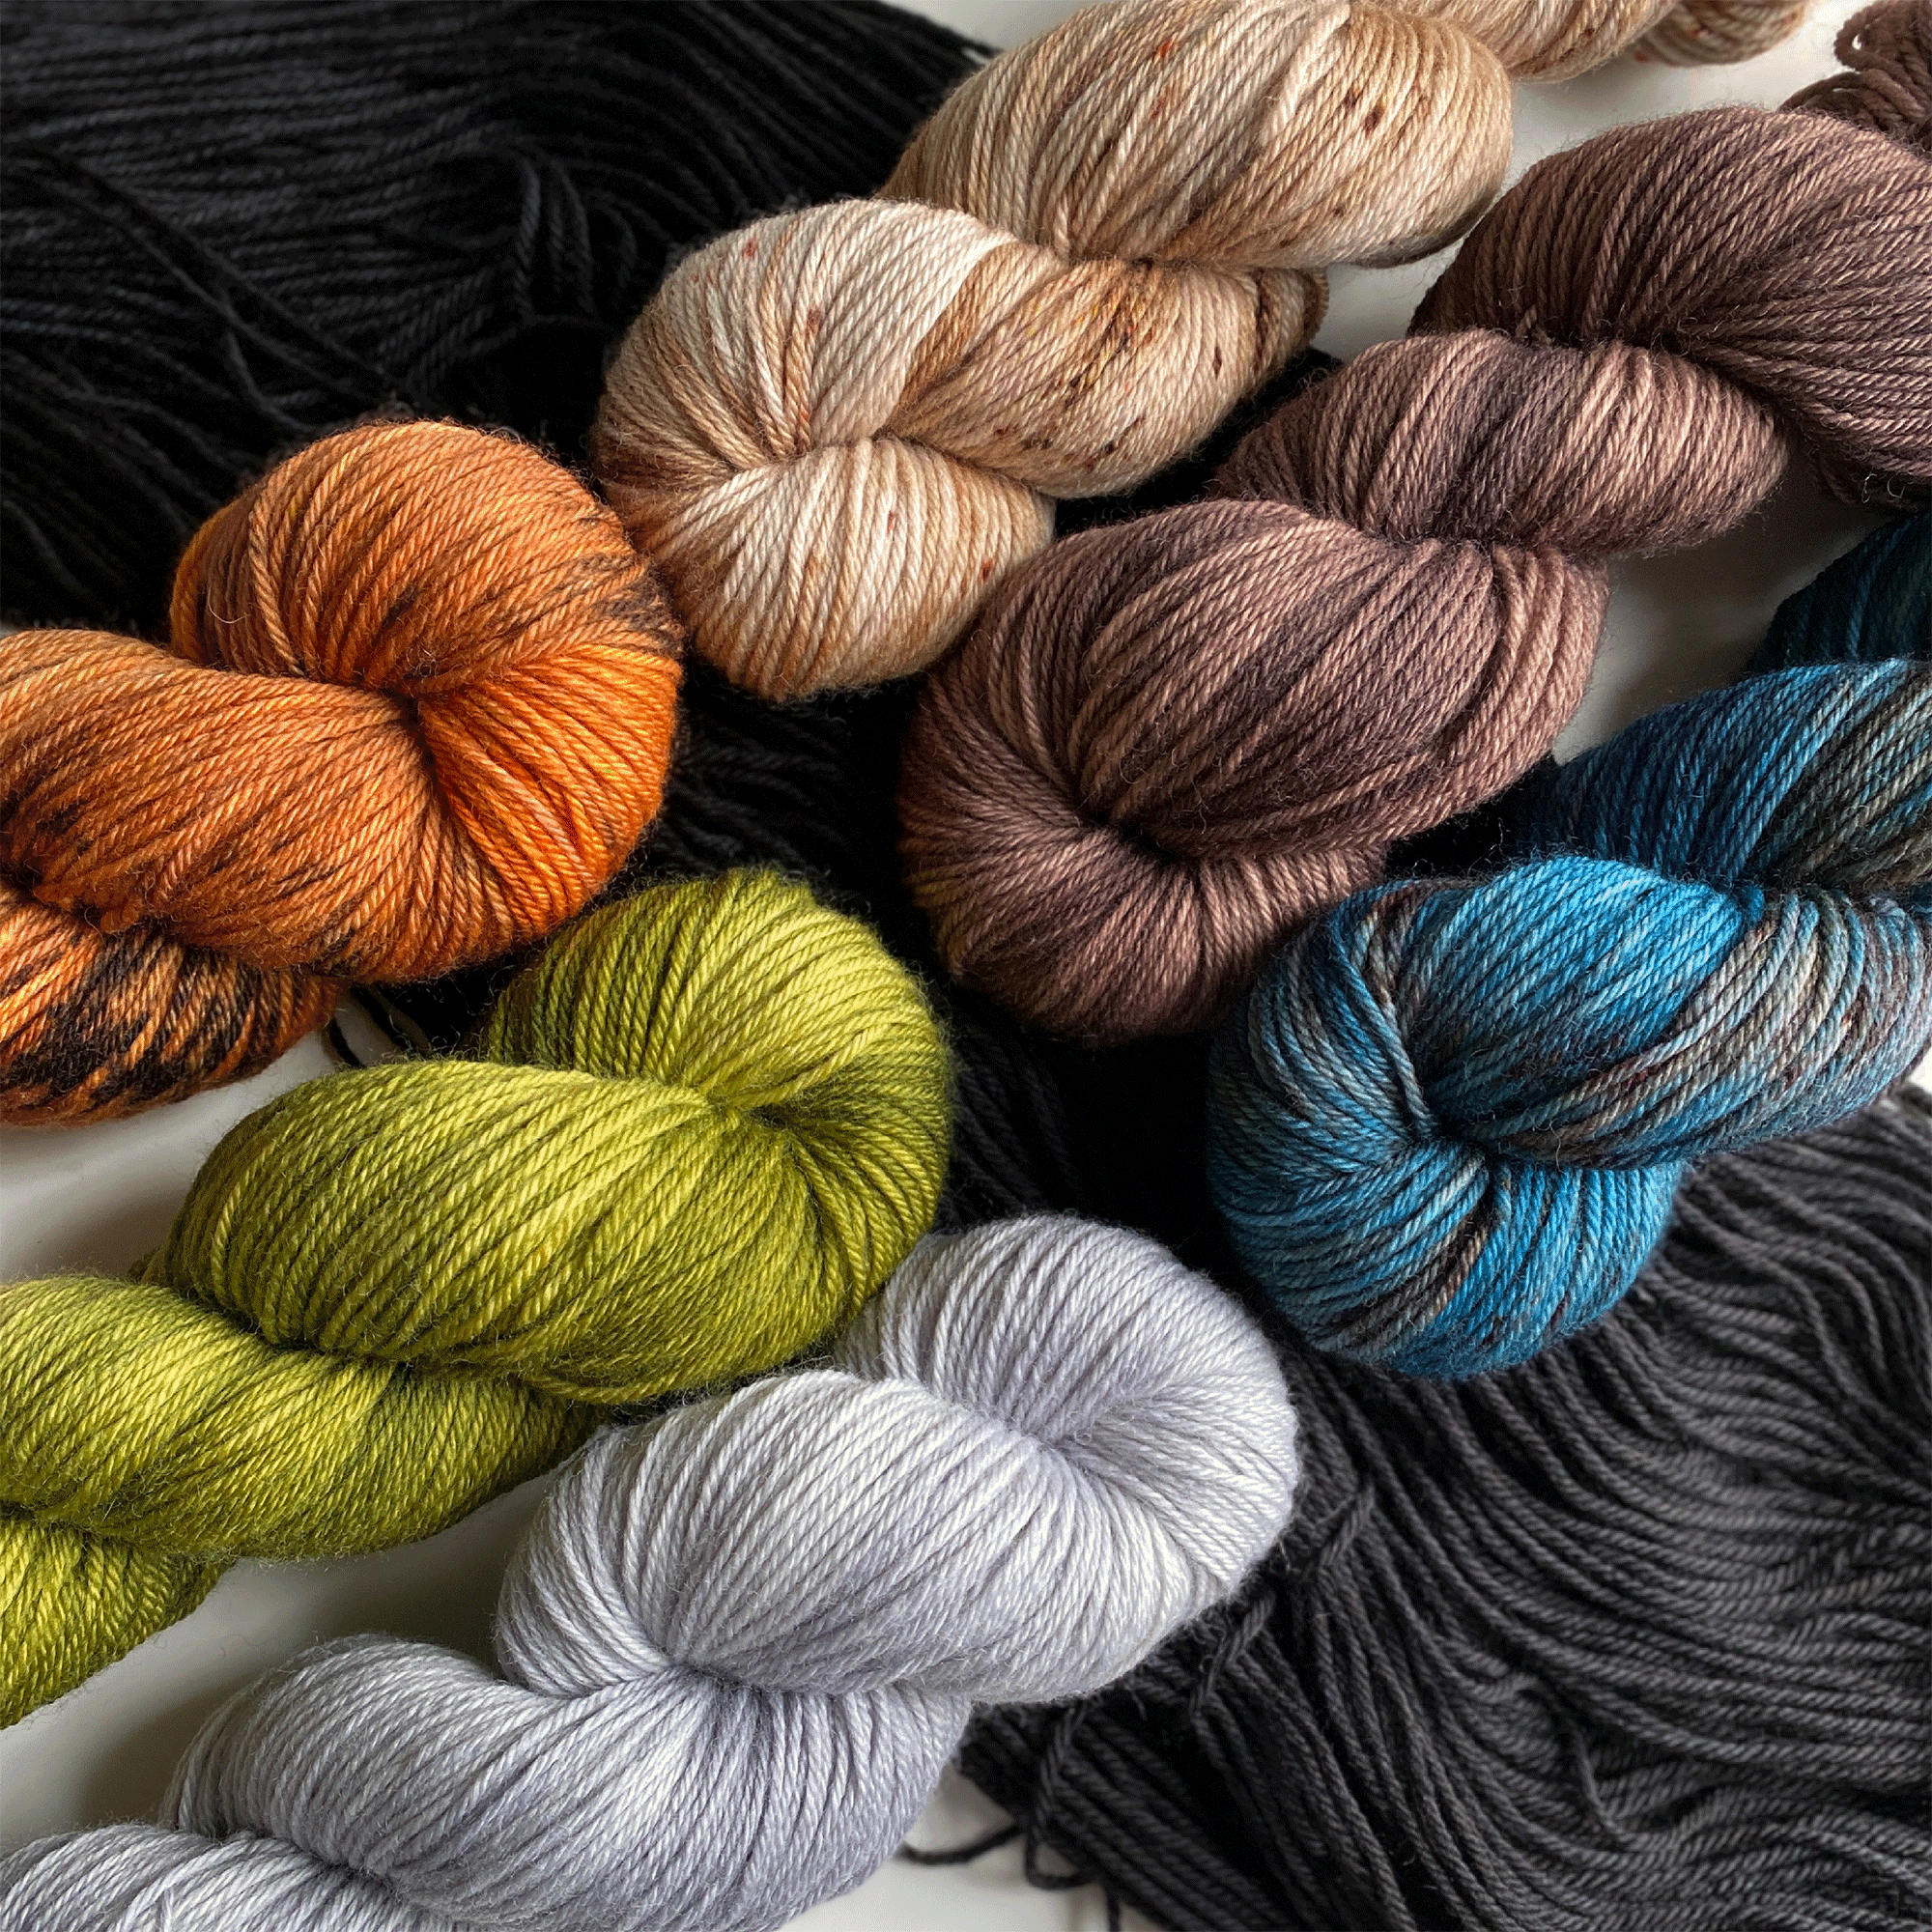 Skeins of orange, green, gray, peach, brown and blue and gray yarn.